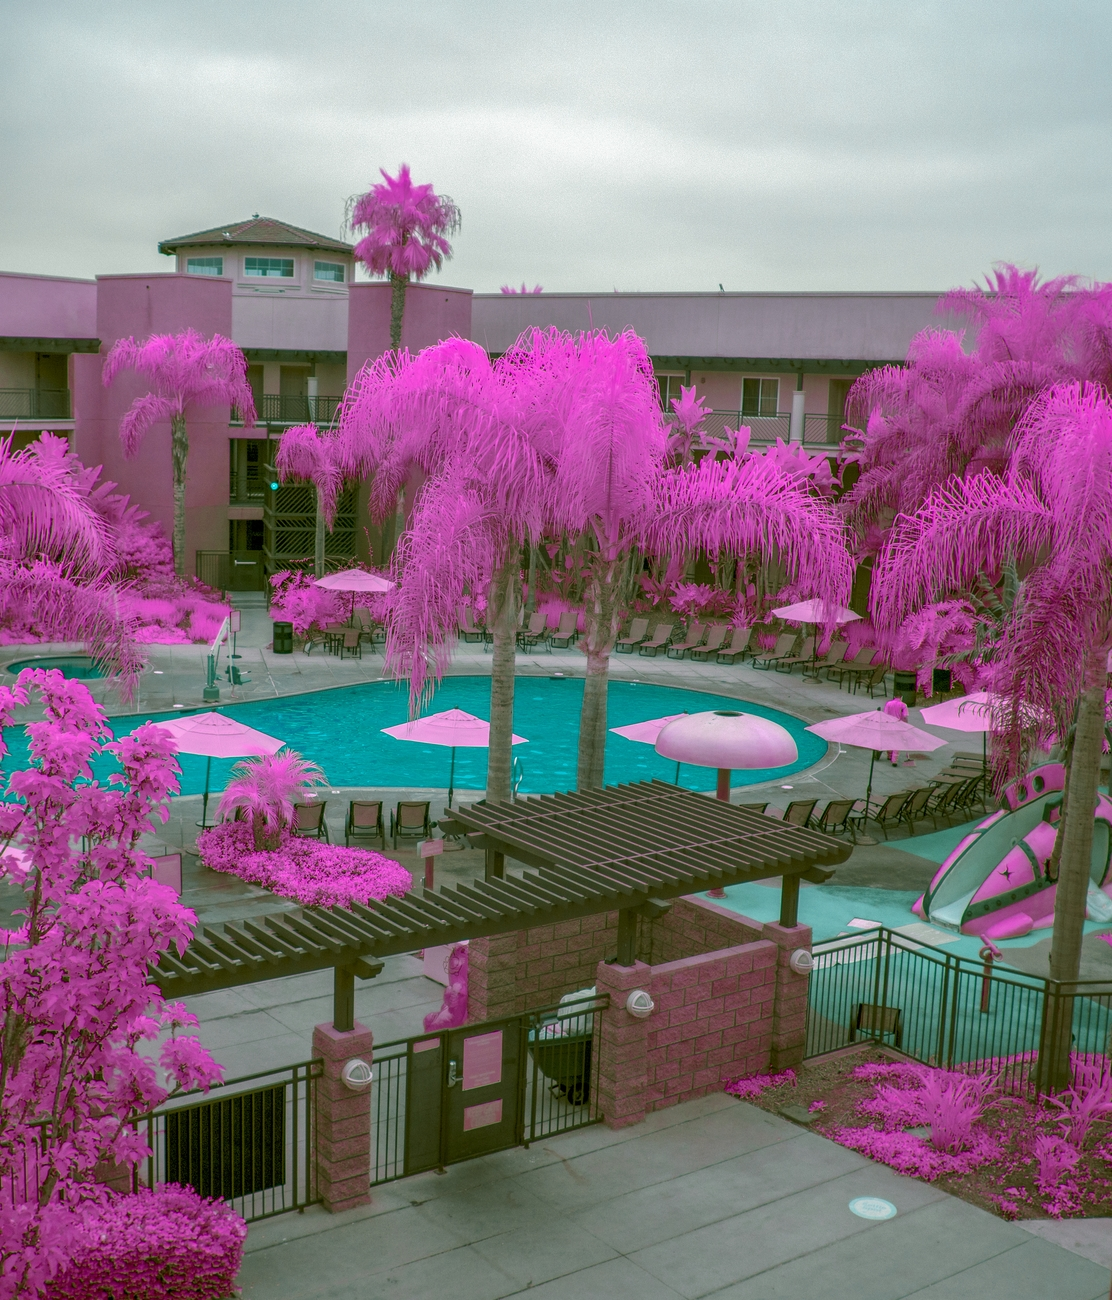 Taken in Infrared, swimming pool and trees.